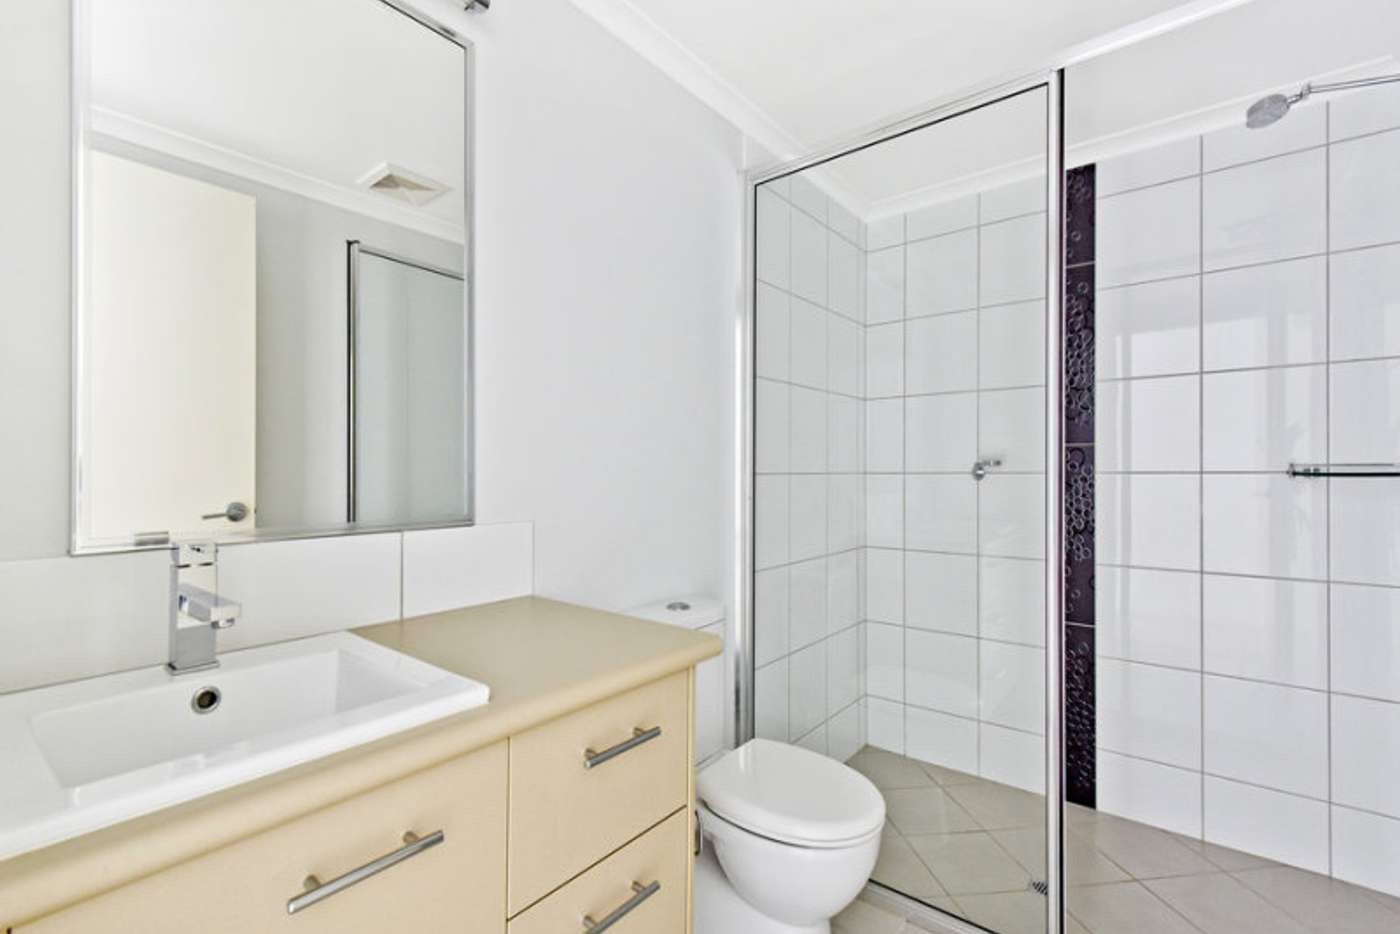 Sixth view of Homely apartment listing, 8E/174 Forrest Parade, Rosebery NT 832